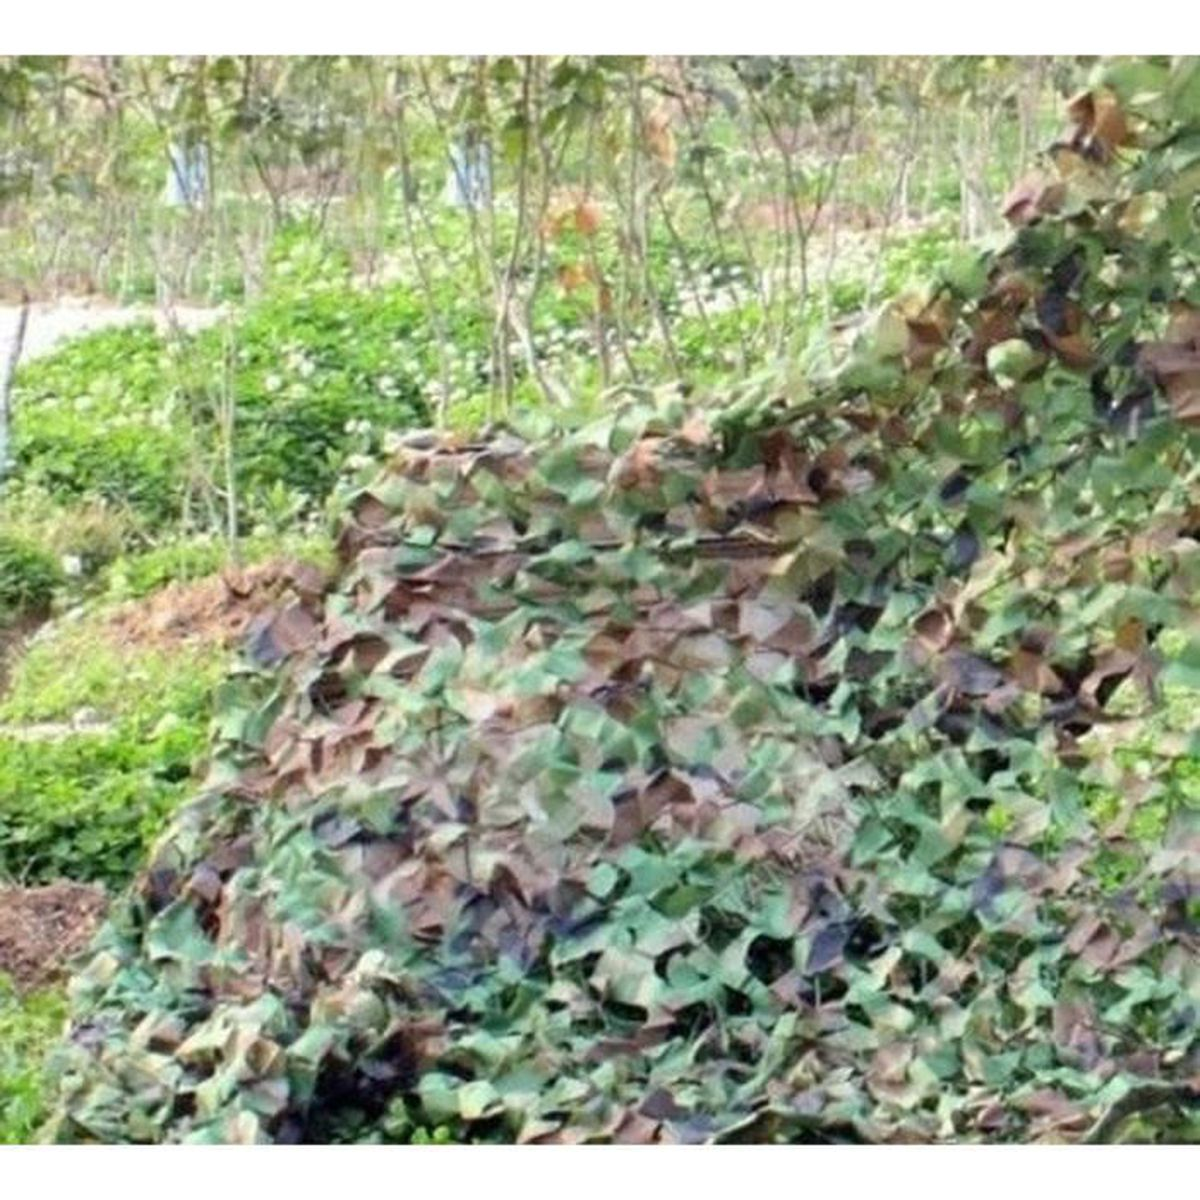 Filet de camouflage militaire woodlands feuille 3 m x 4 m - Filet de camouflage pas cher ...